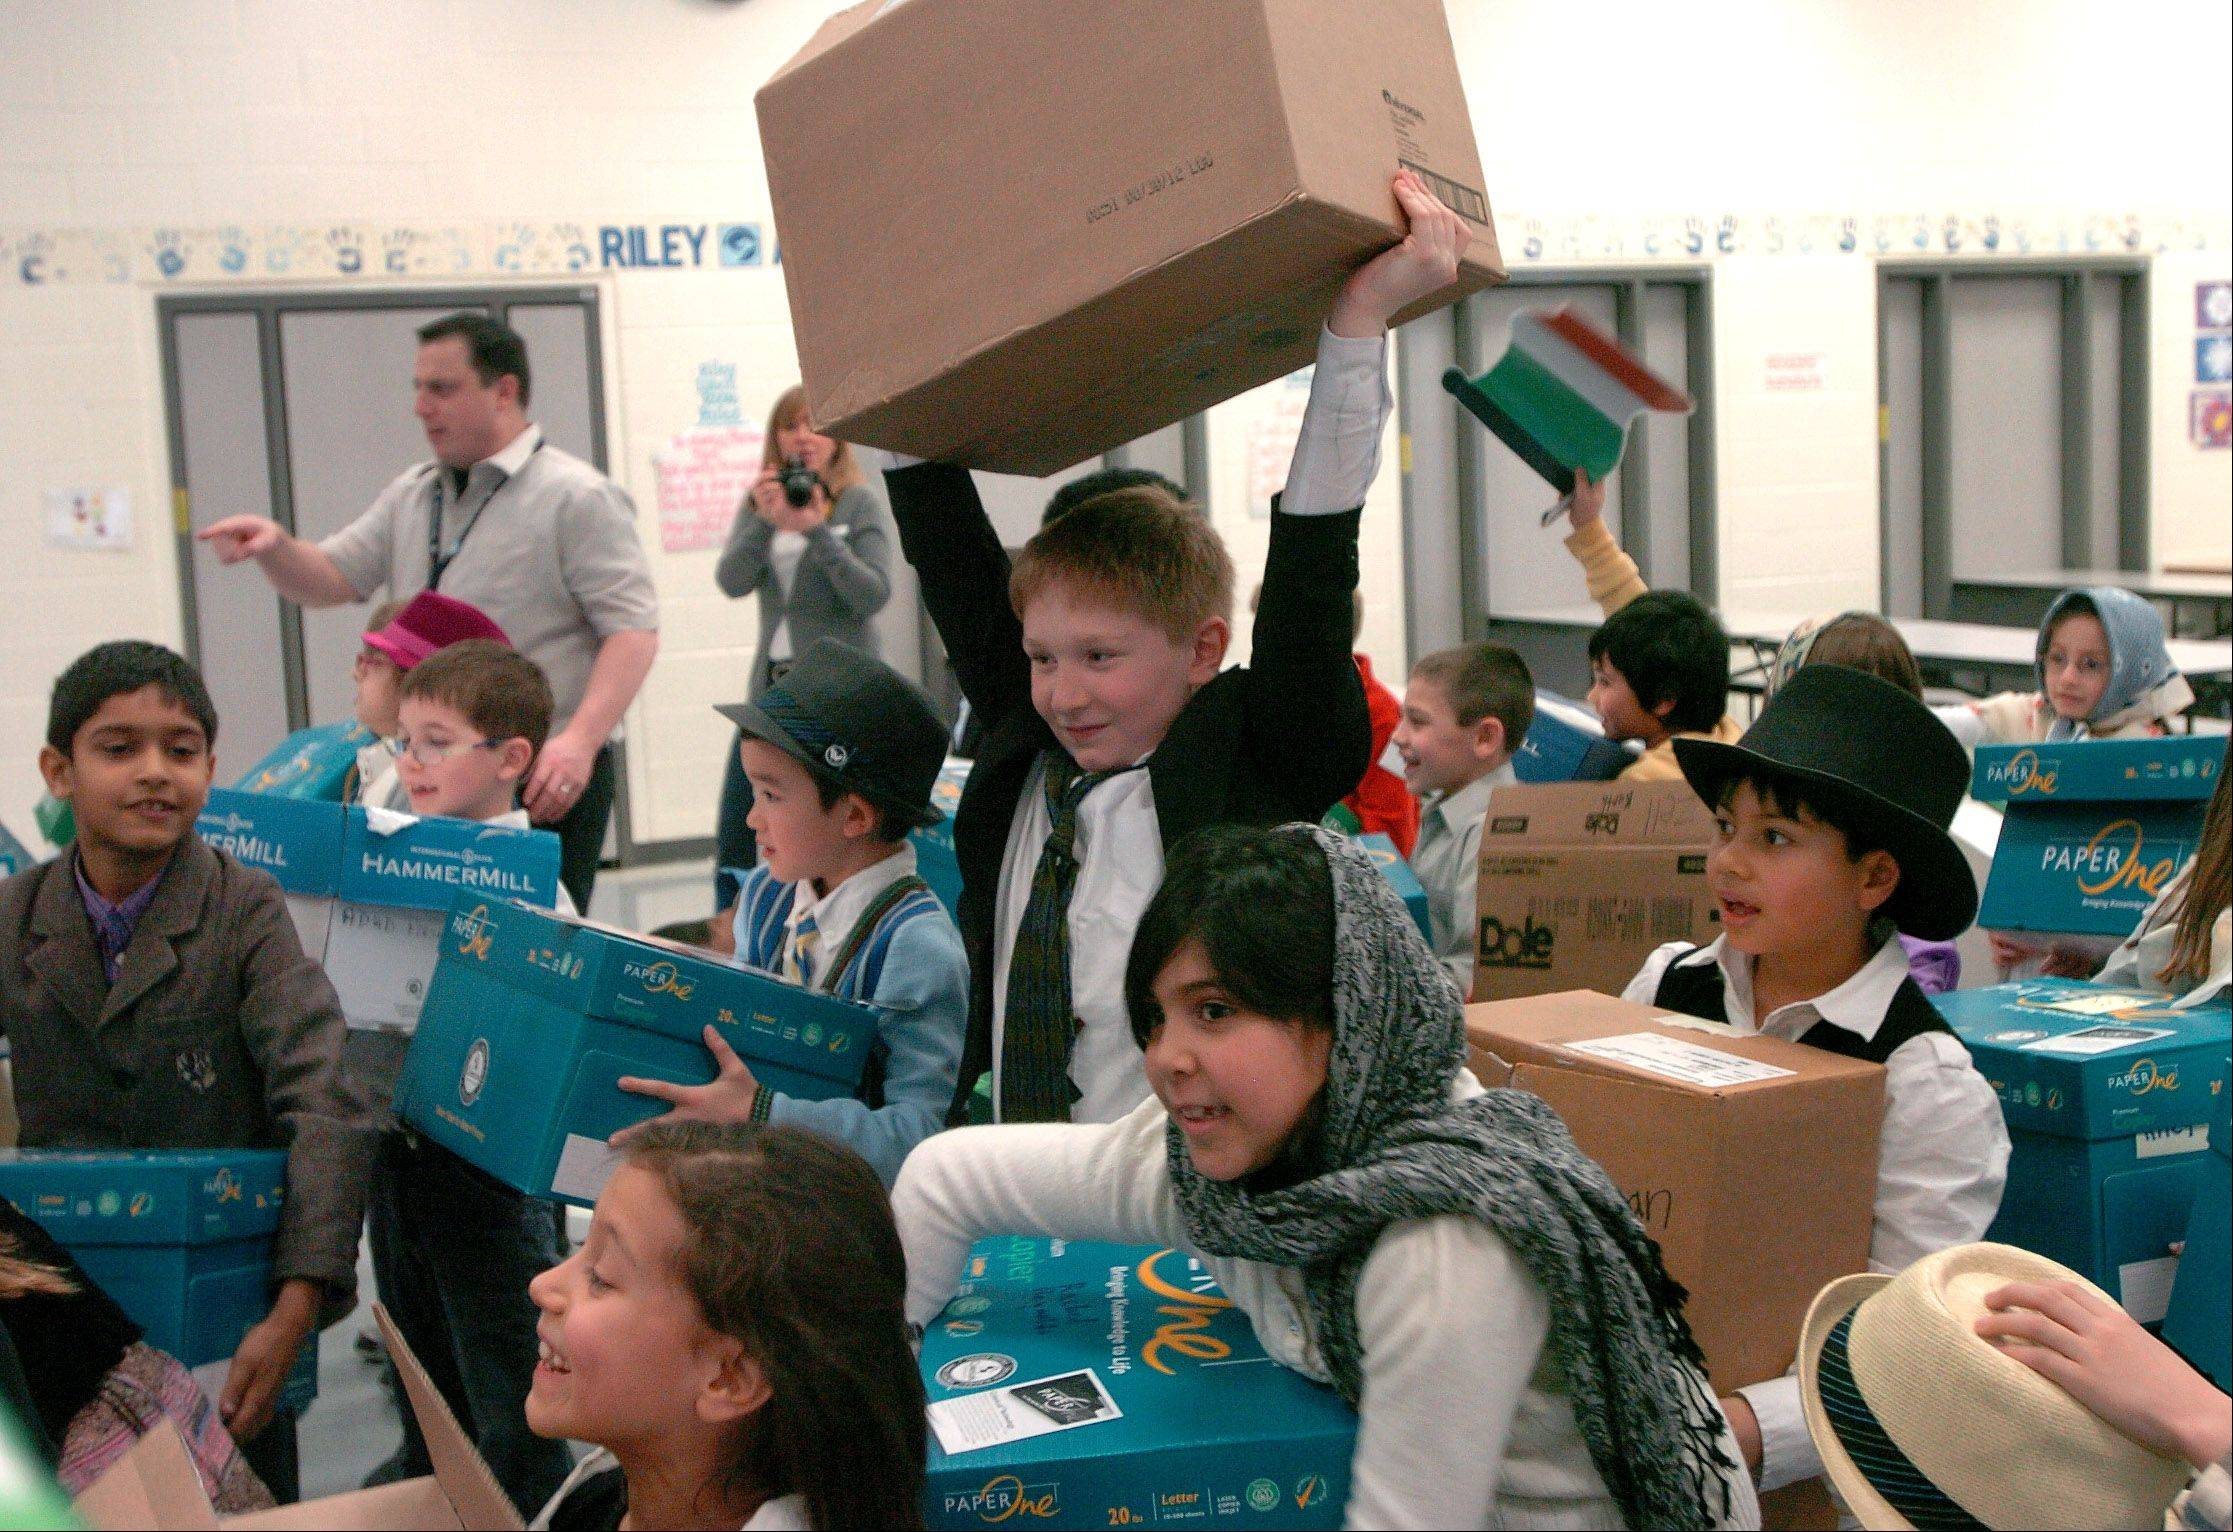 Jack Cadre hoists his luggage in the ship's steerage while coming to America, as Riley School 2nd graders explore what it was like to be an immigrant coming to America at the turn of the century.